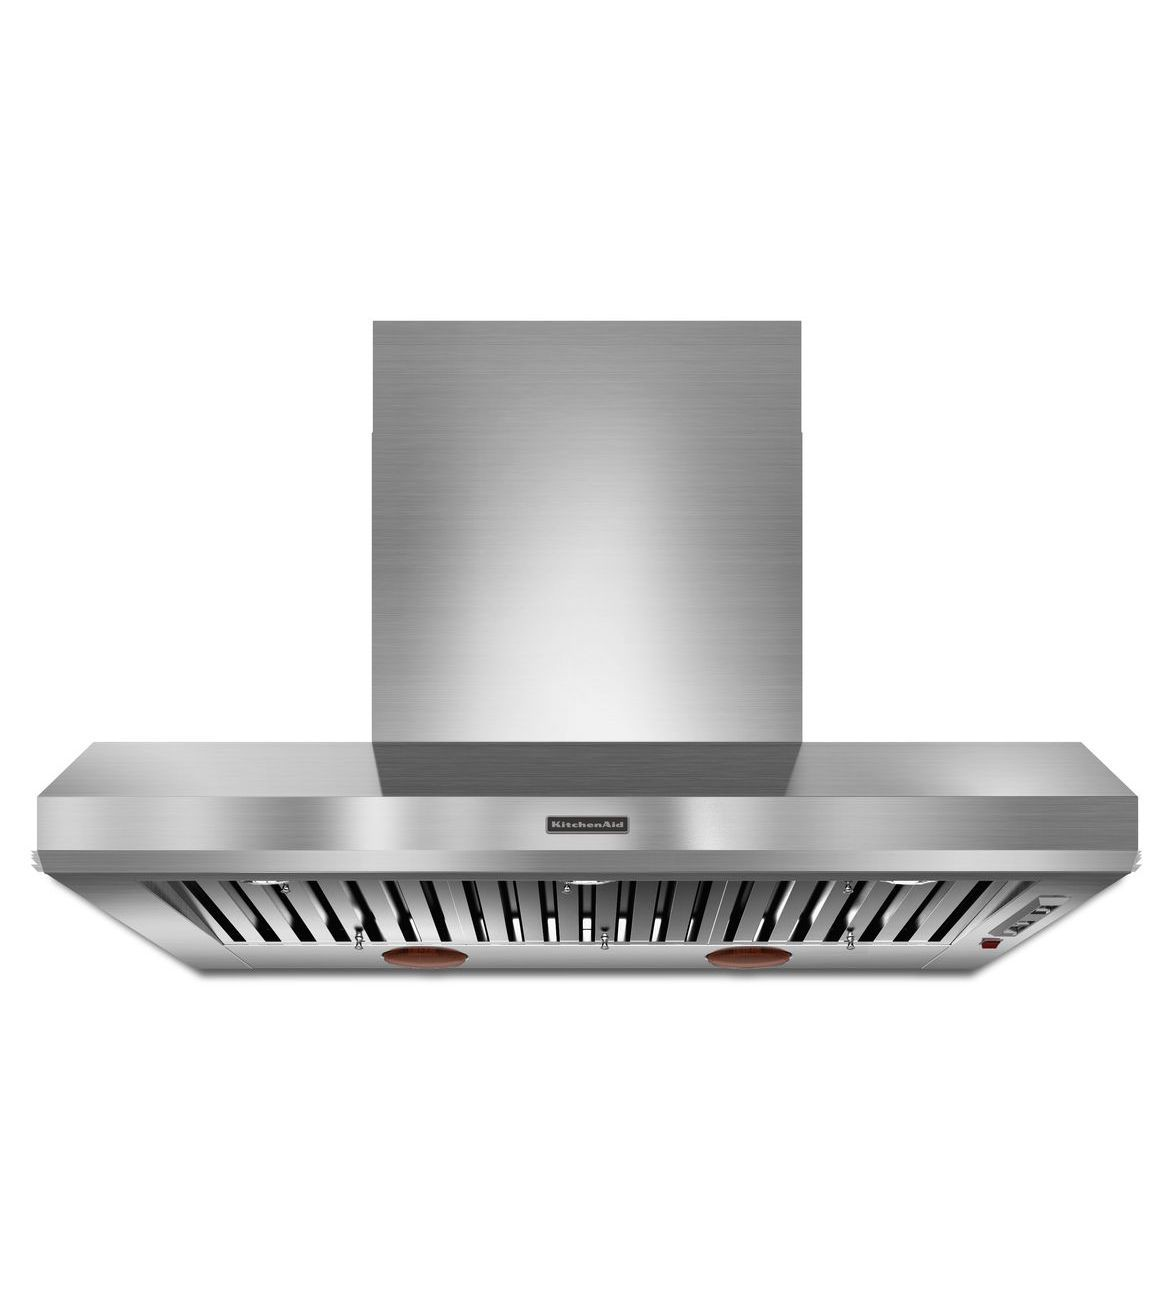 Kitchenaid 48 Wall Mount 600 1200 Cfm Canopy Hood Commercial Style Kxw9748yss Stainless Steel Range Hood Kitchen Exhaust Kitchen Aid